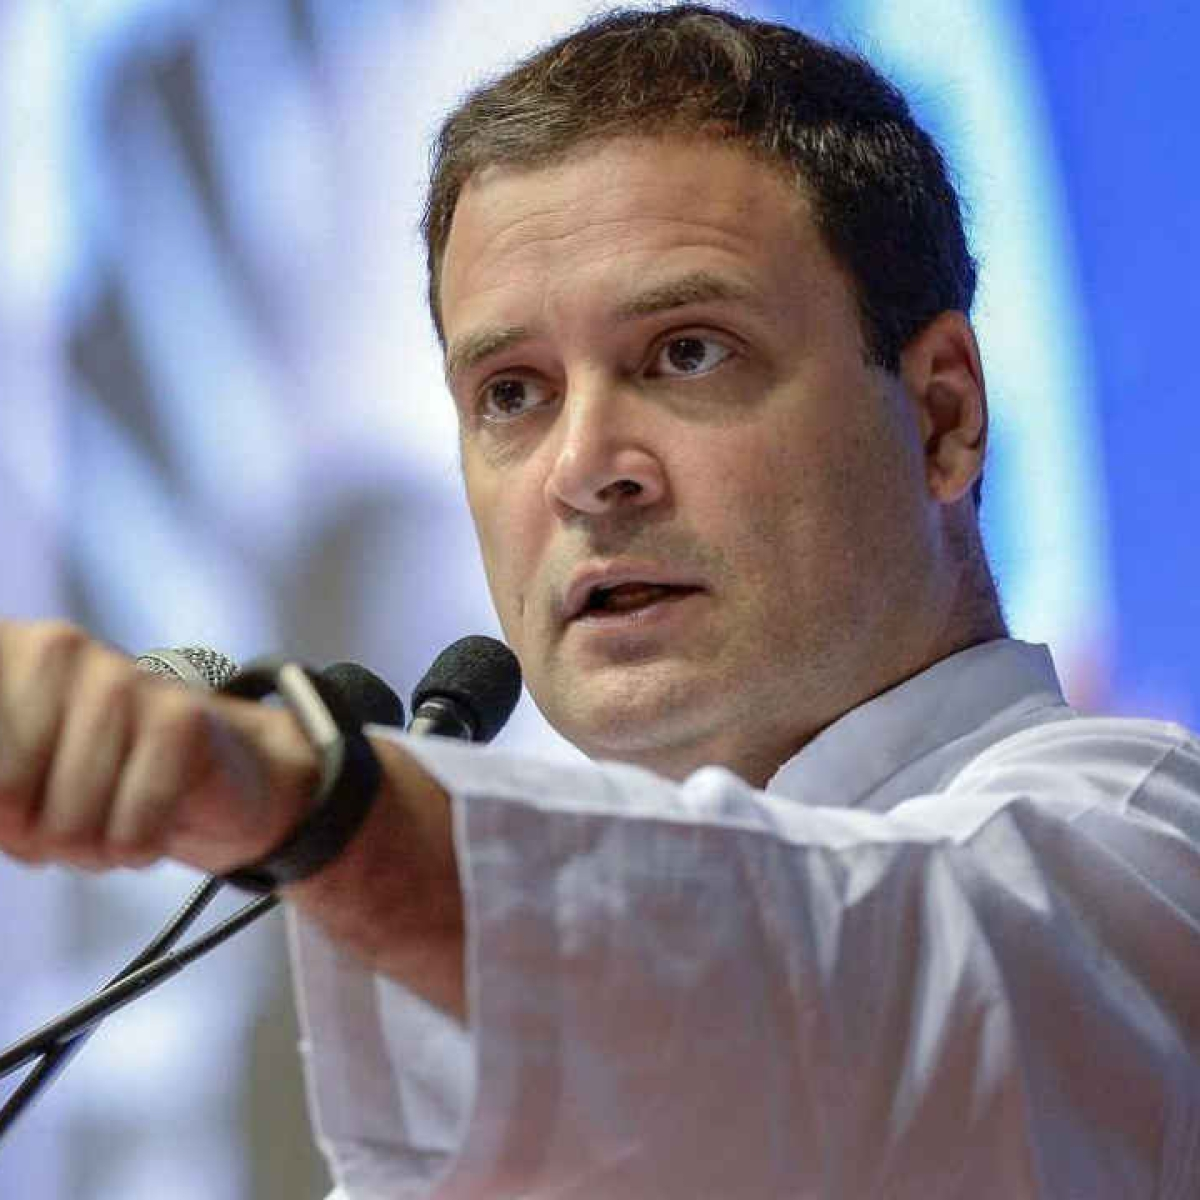 'If Modi govt had done its job...': Rahul Gandhi slams Centre as foreign aid pours in to combat COVID-19 in India